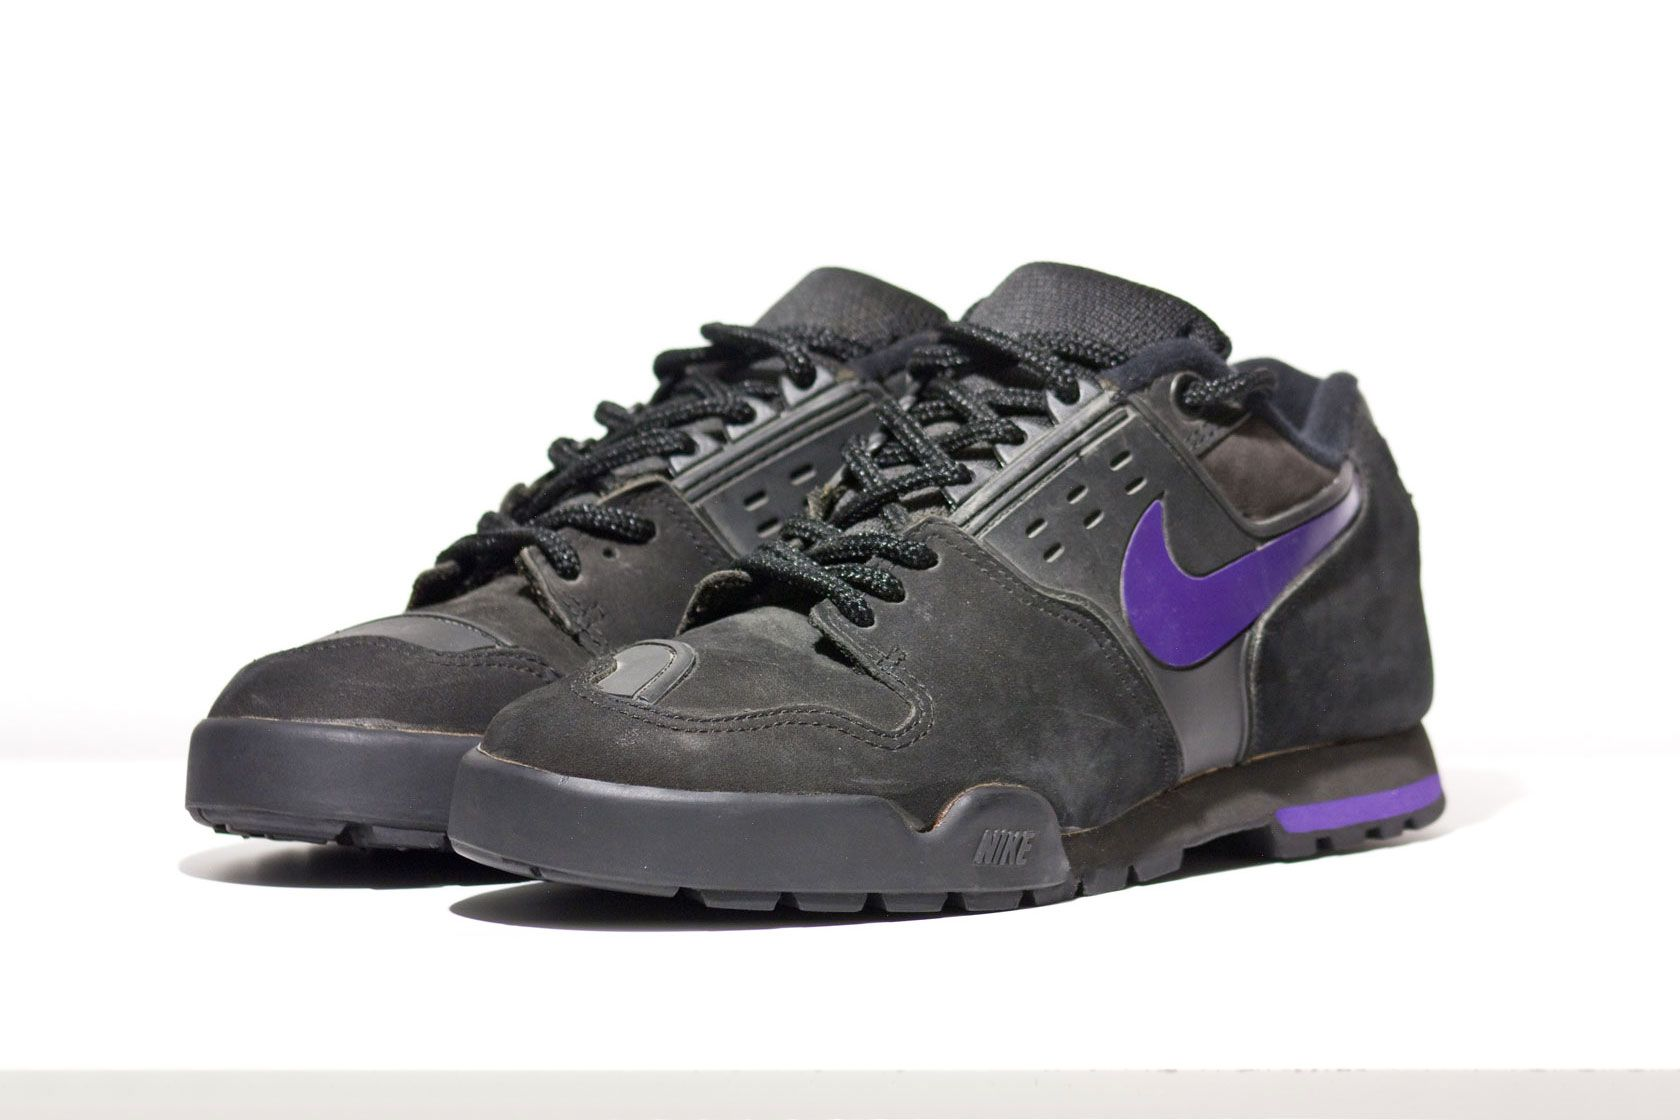 detailed look d805a 7bca2 WORN TO BE WILD » Nike Son of Lava Dome